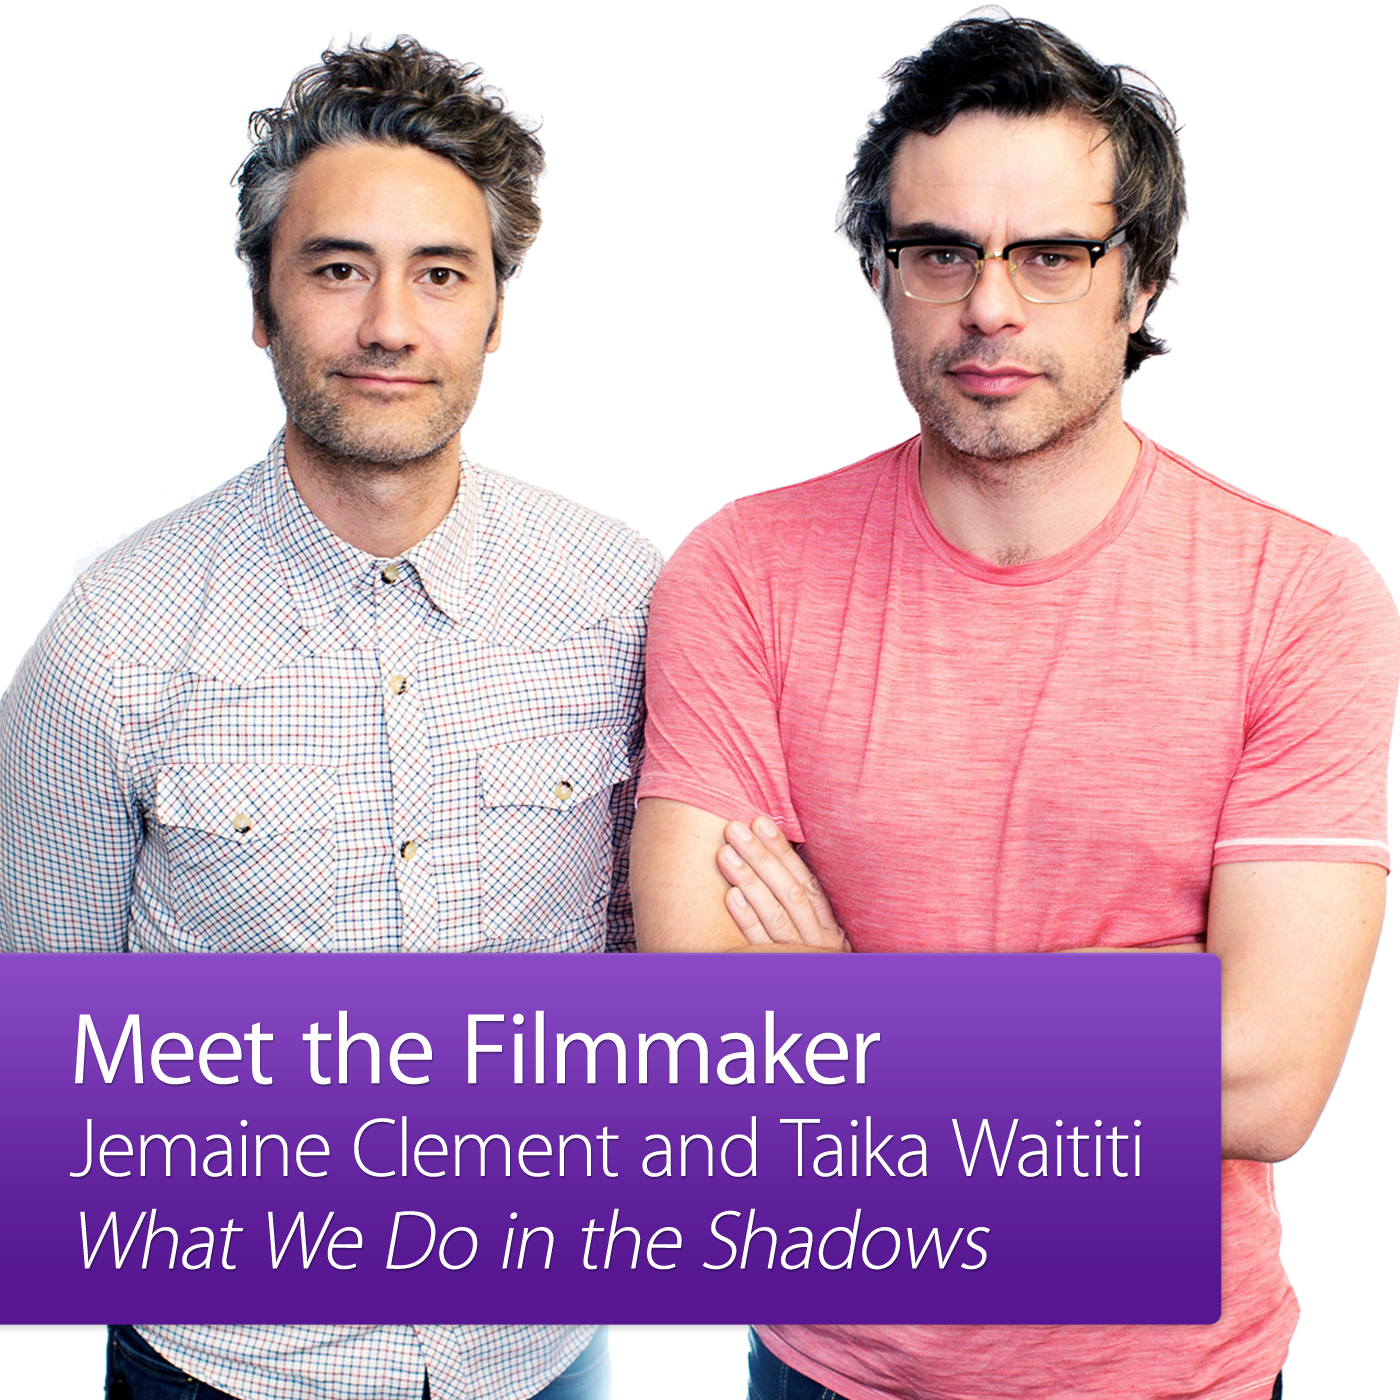 What We Do in the Shadows: Meet The Filmmaker